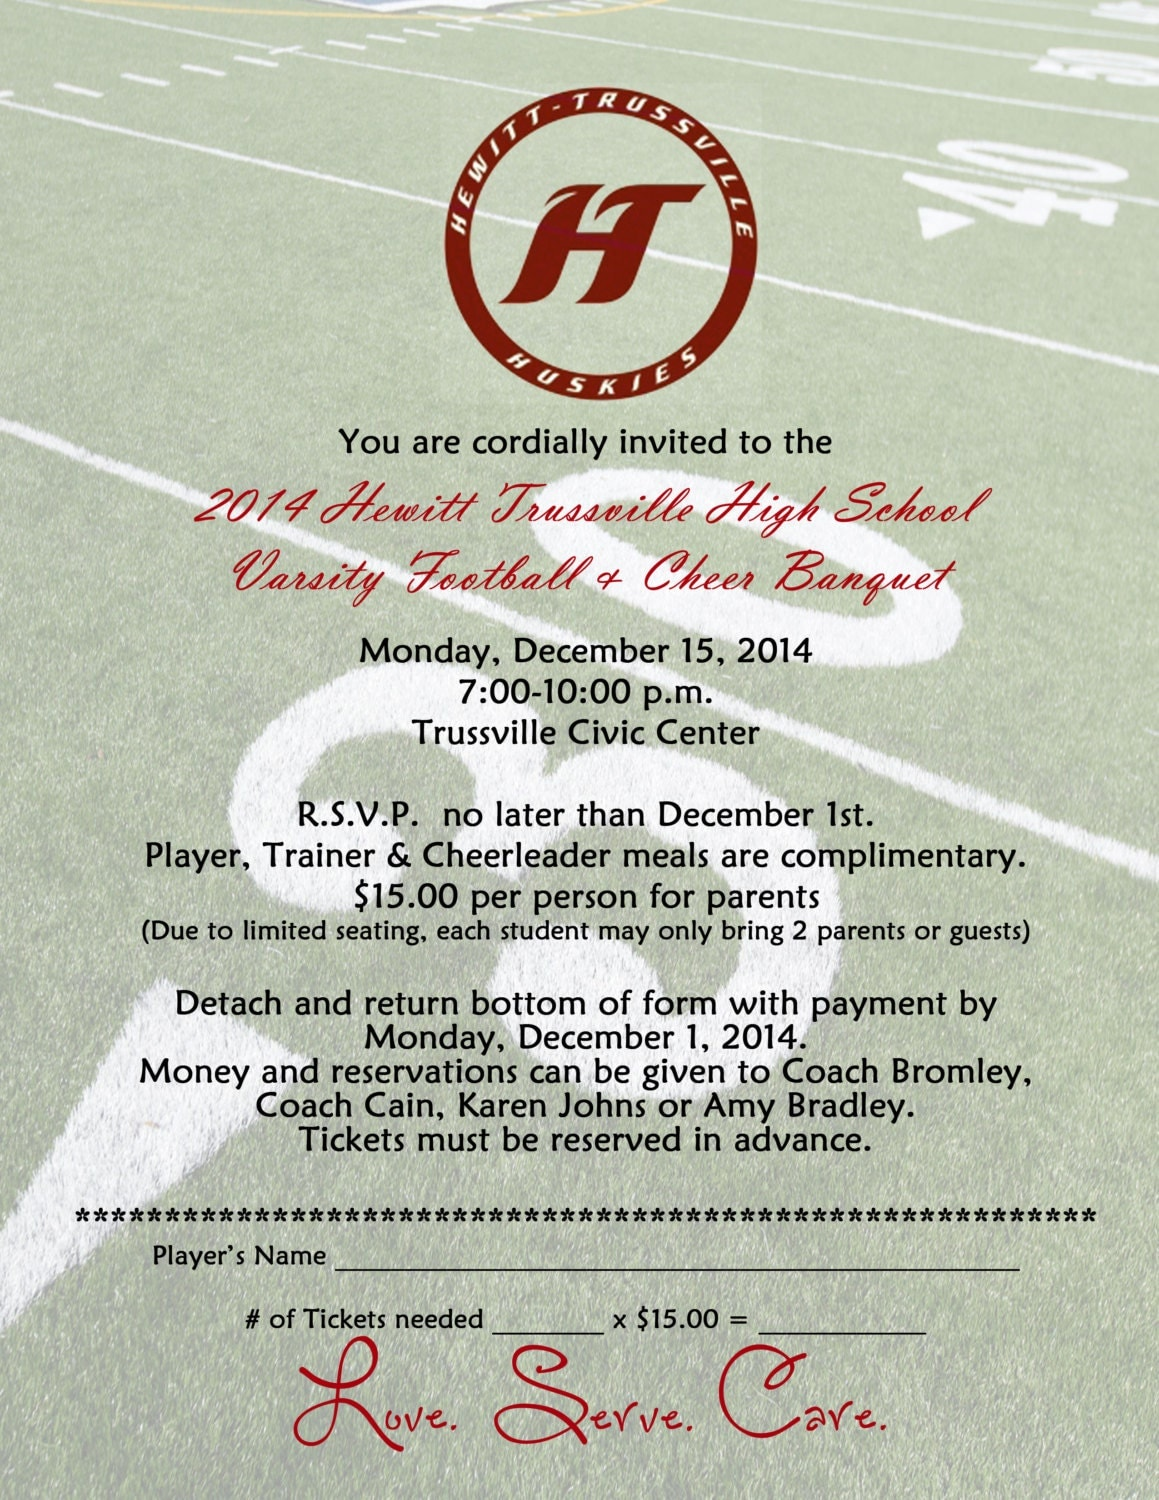 Football banquet Invitation Digital File Printable DIY